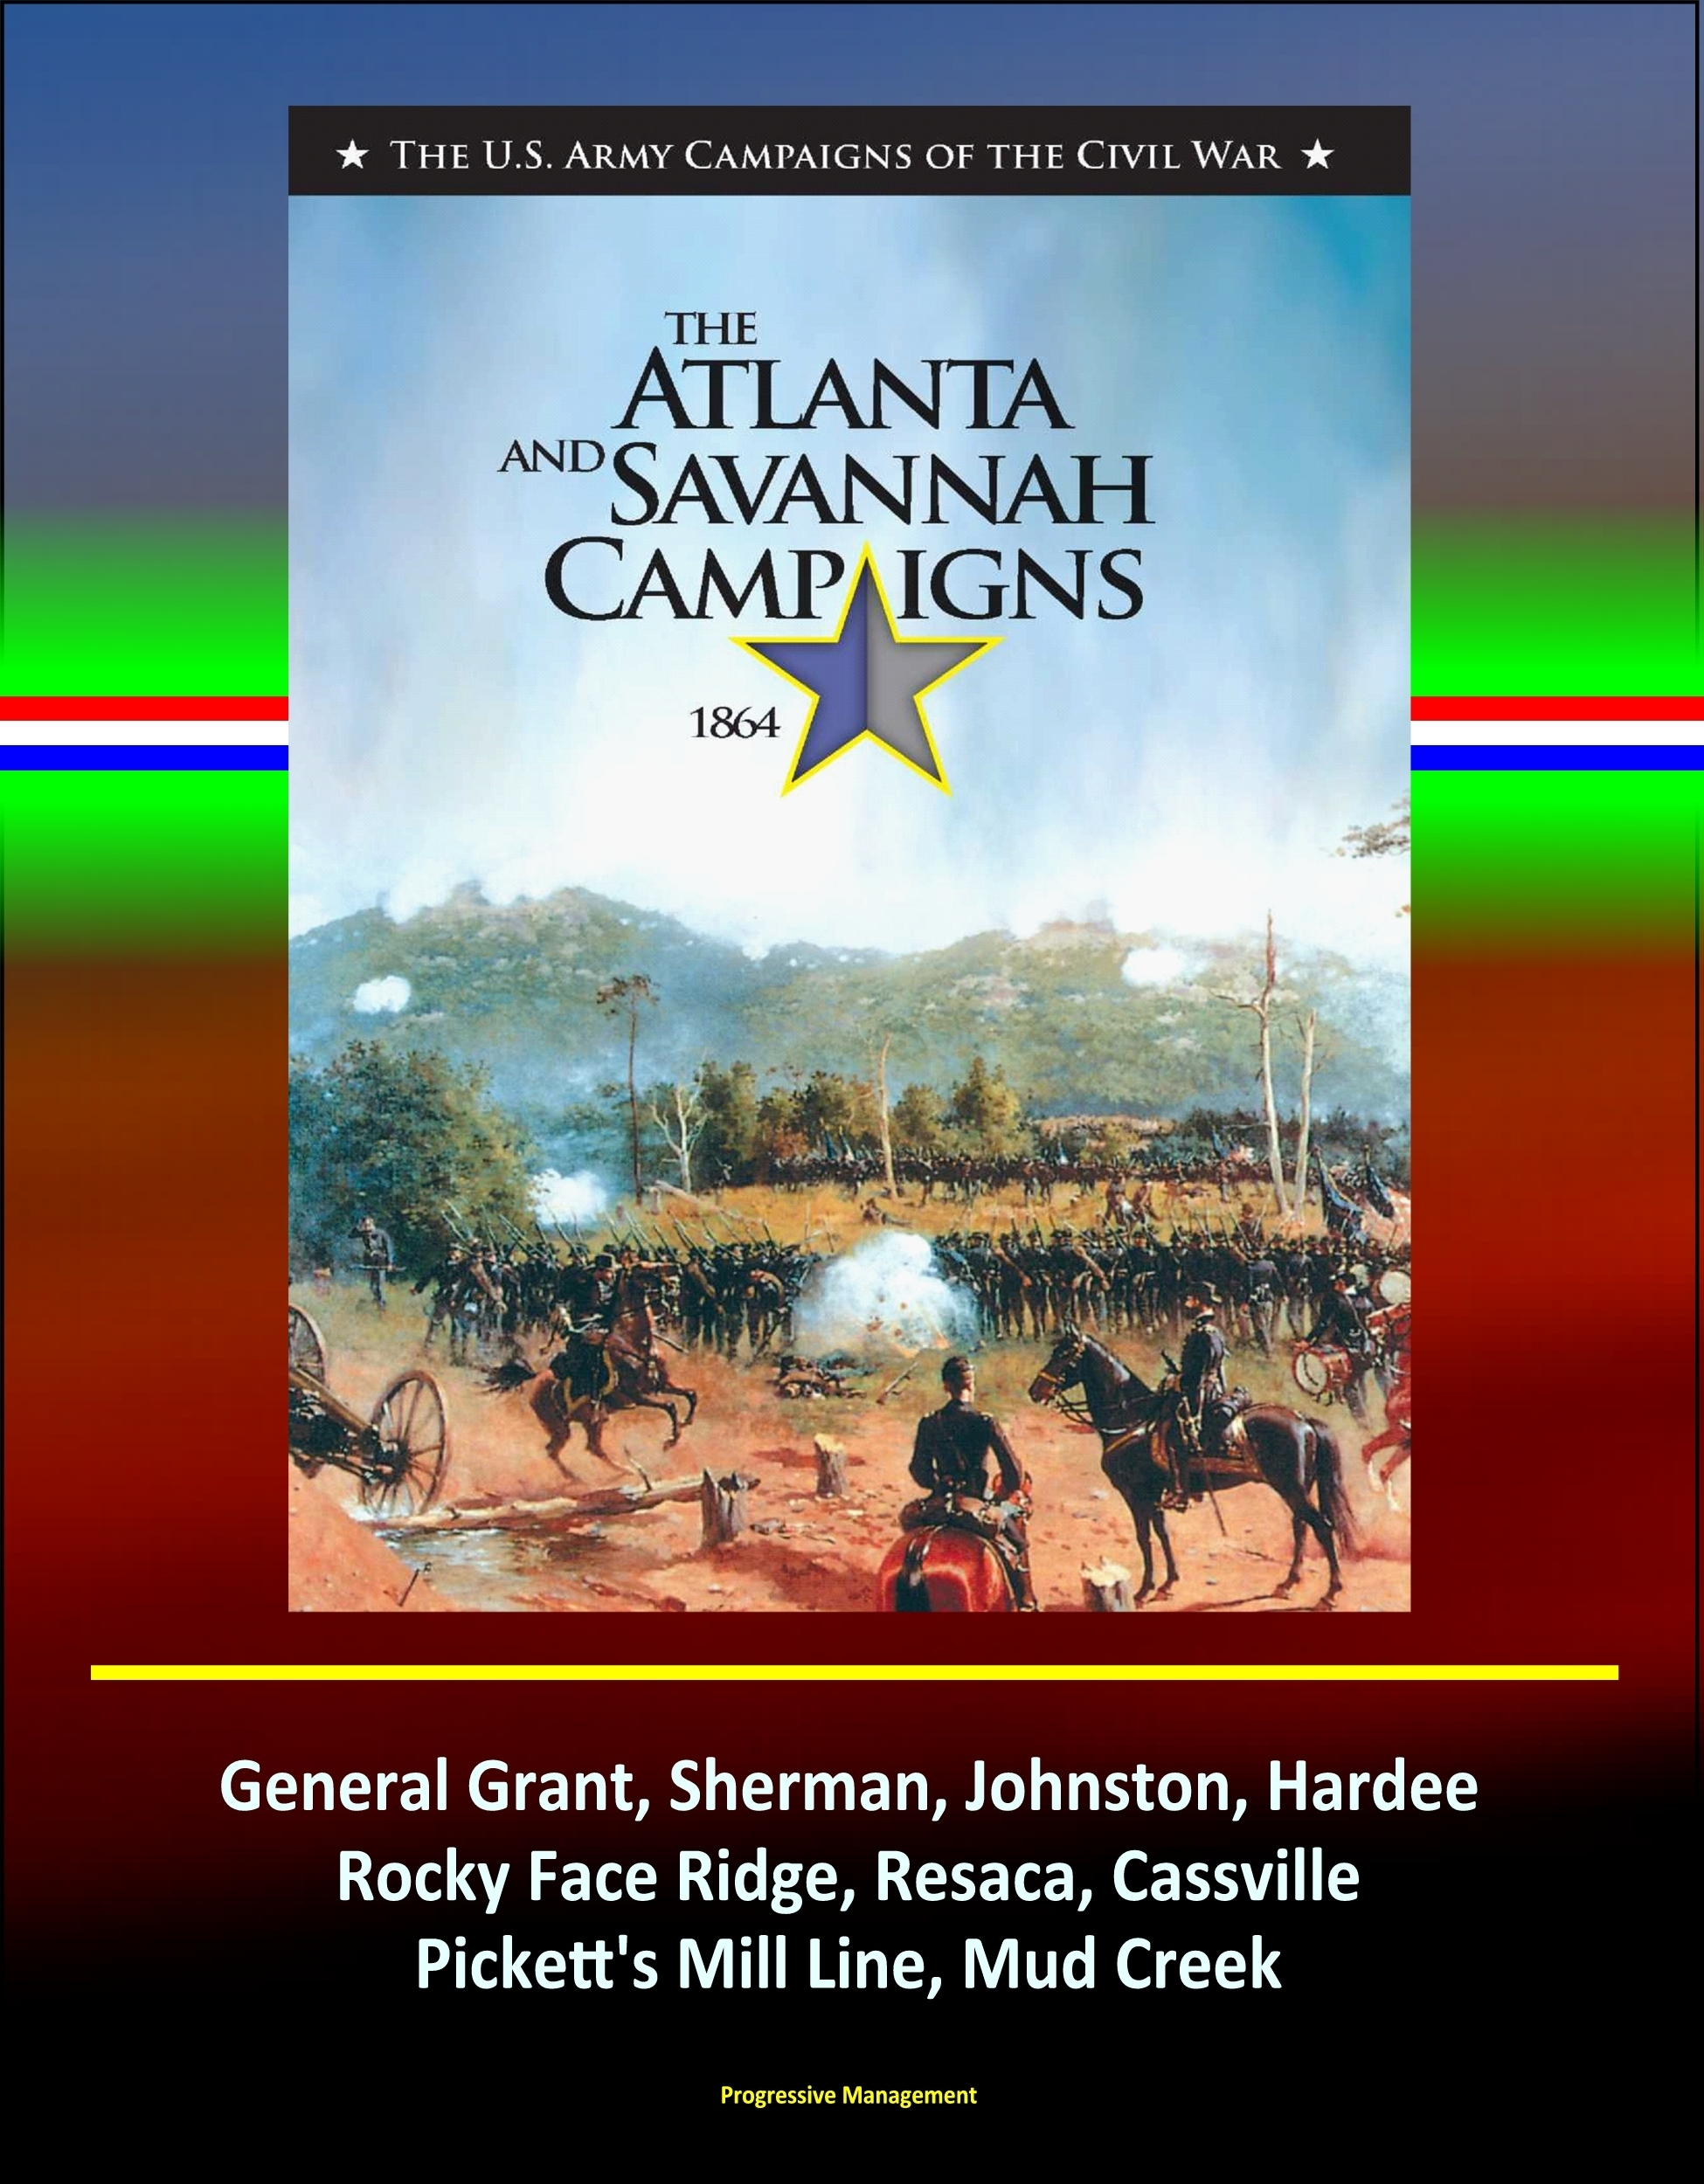 The Atlanta and Savannah Campaigns 1864: The U.S. Army Campaigns of the Civil War - General Grant, Sherman, Johnston, Hardee, Rocky Face Ridge, Resaca, Cassville, Picketts Mill Line, Mud Creek  by  Progressive Management